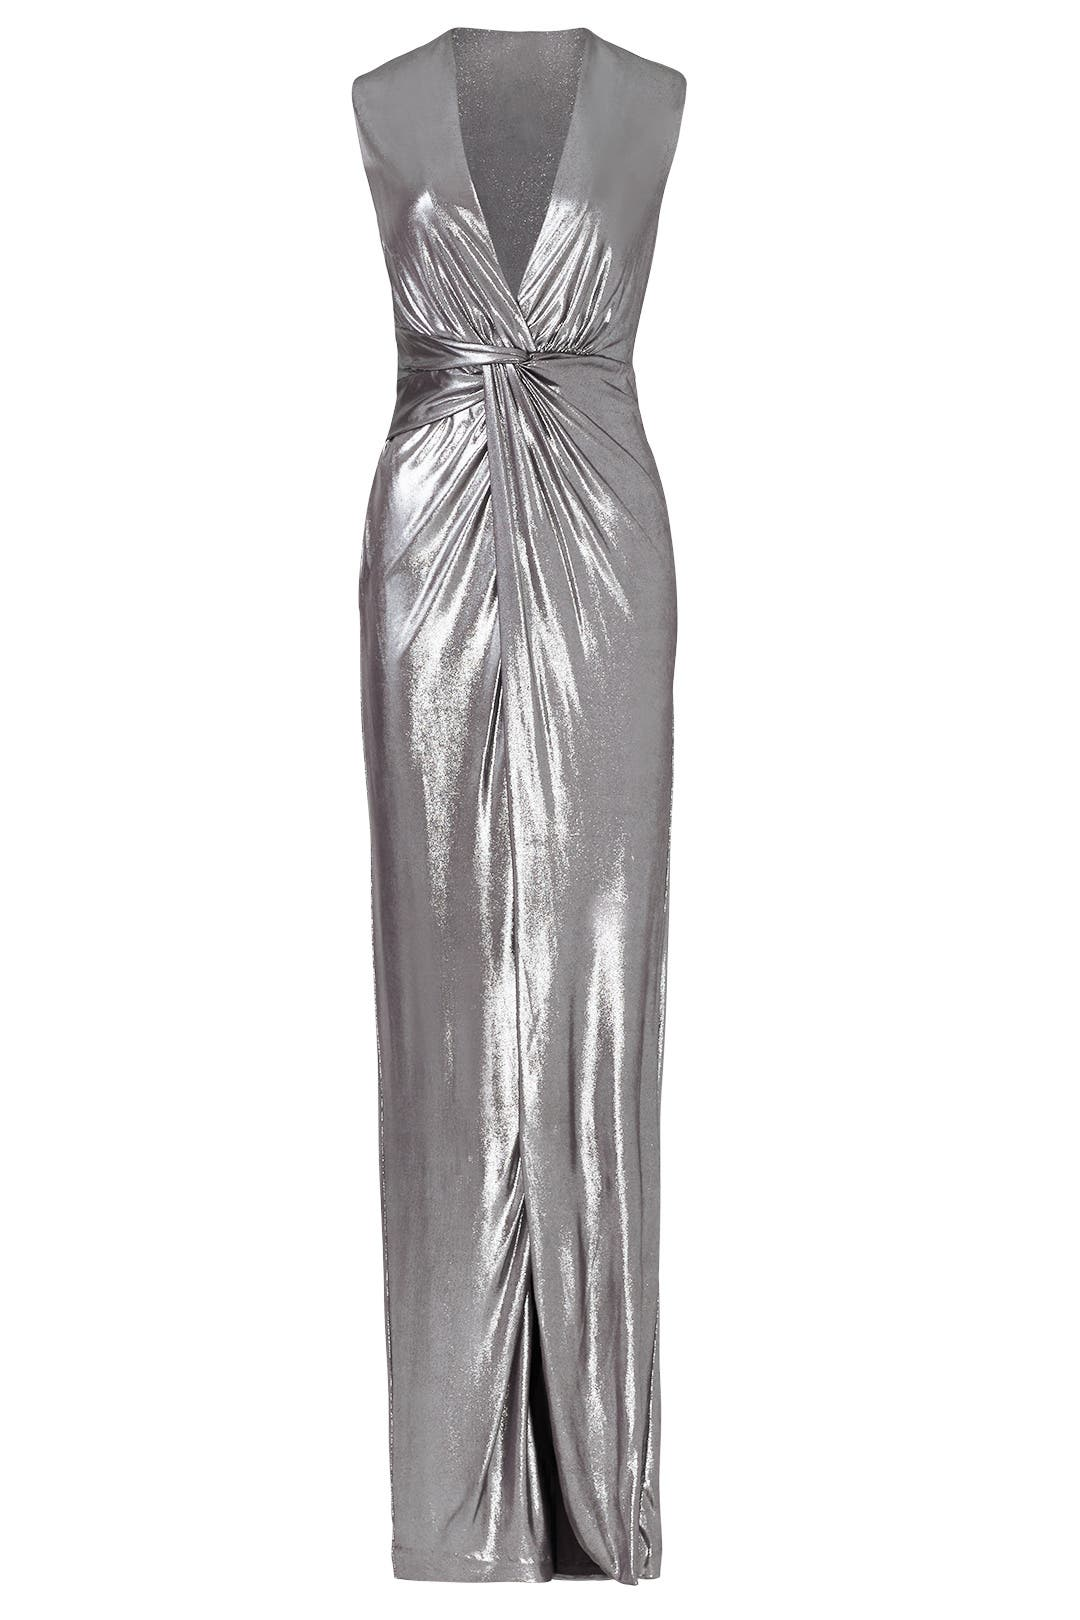 Silver Twist Column Gown by Halston Heritage for $50 - $70 | Rent ...